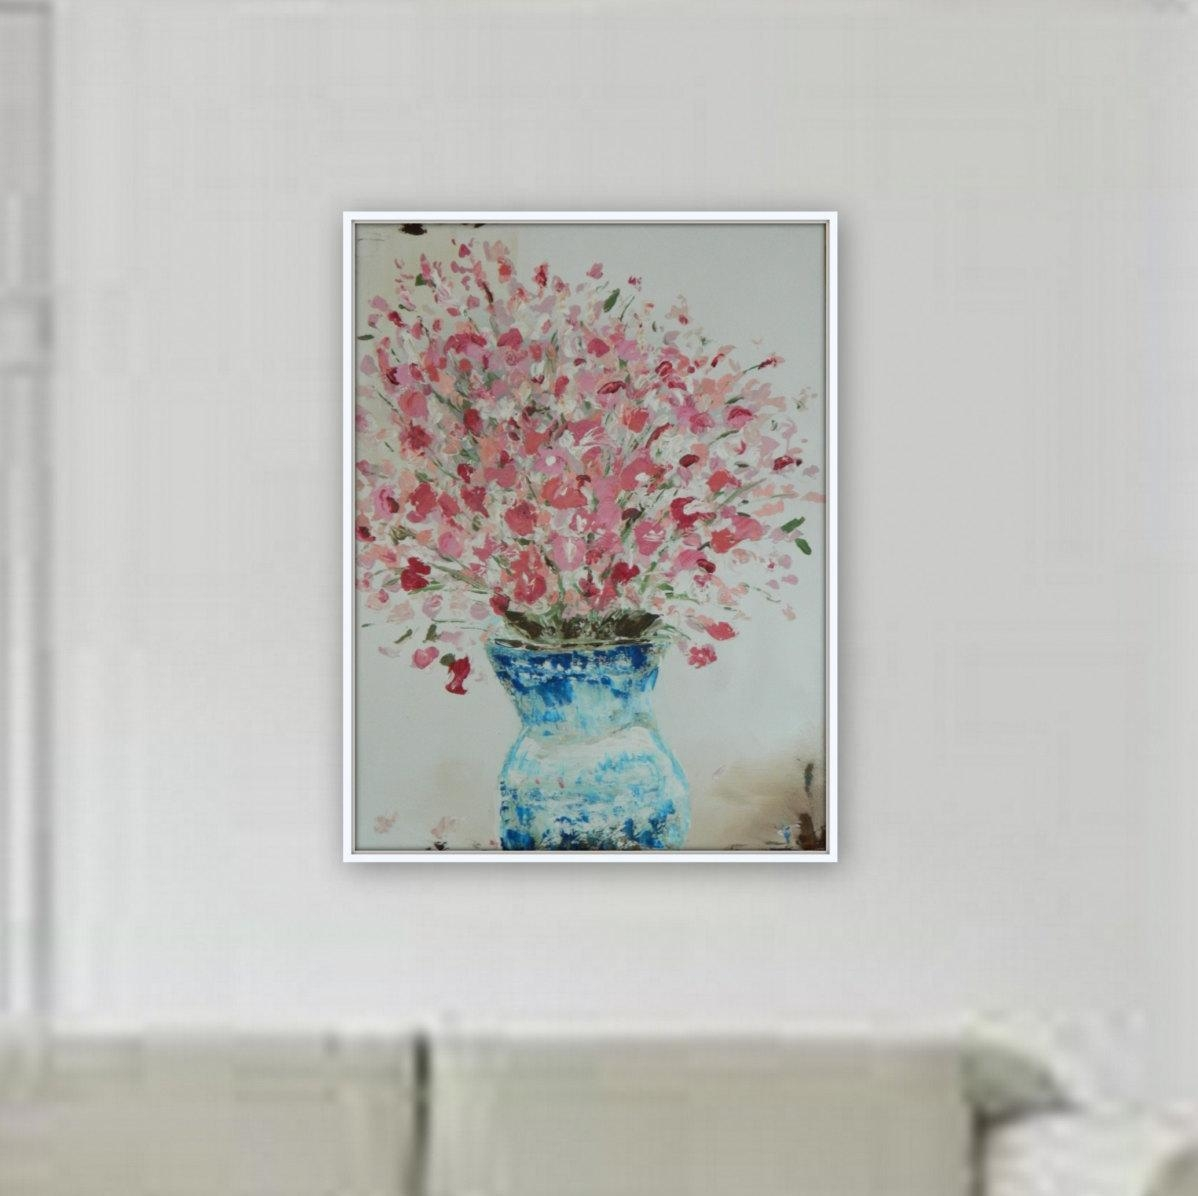 Flower Painting Original Wall Art Ready To Hang Canvas Painting Pertaining To 48X48 Canvas Wall Art (View 4 of 20)